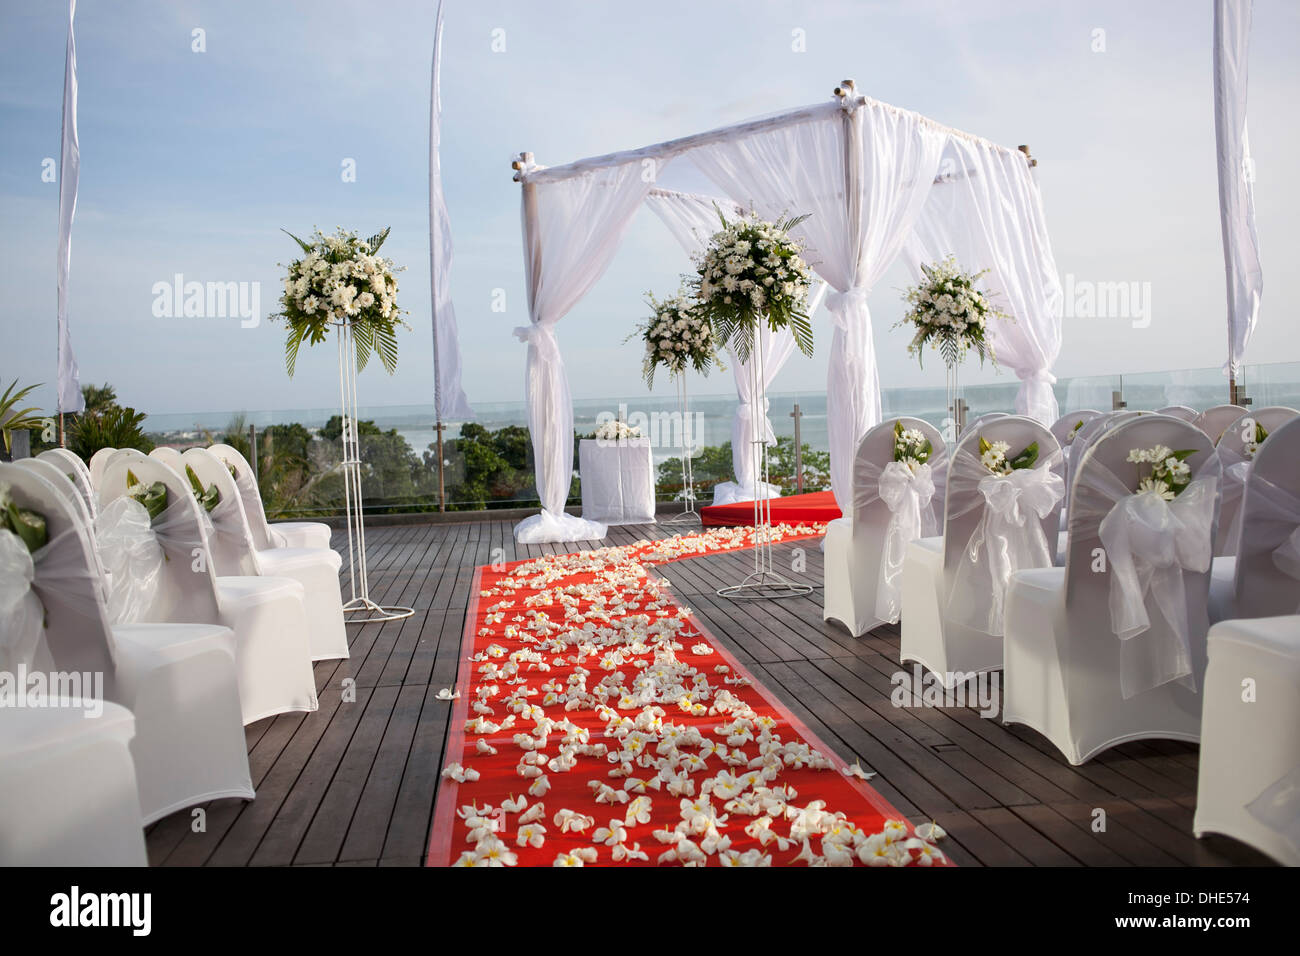 wedding venue setup corridor red flowers decor  decoration decorative sunset white cloth square structure ceremony carpet - Stock Image